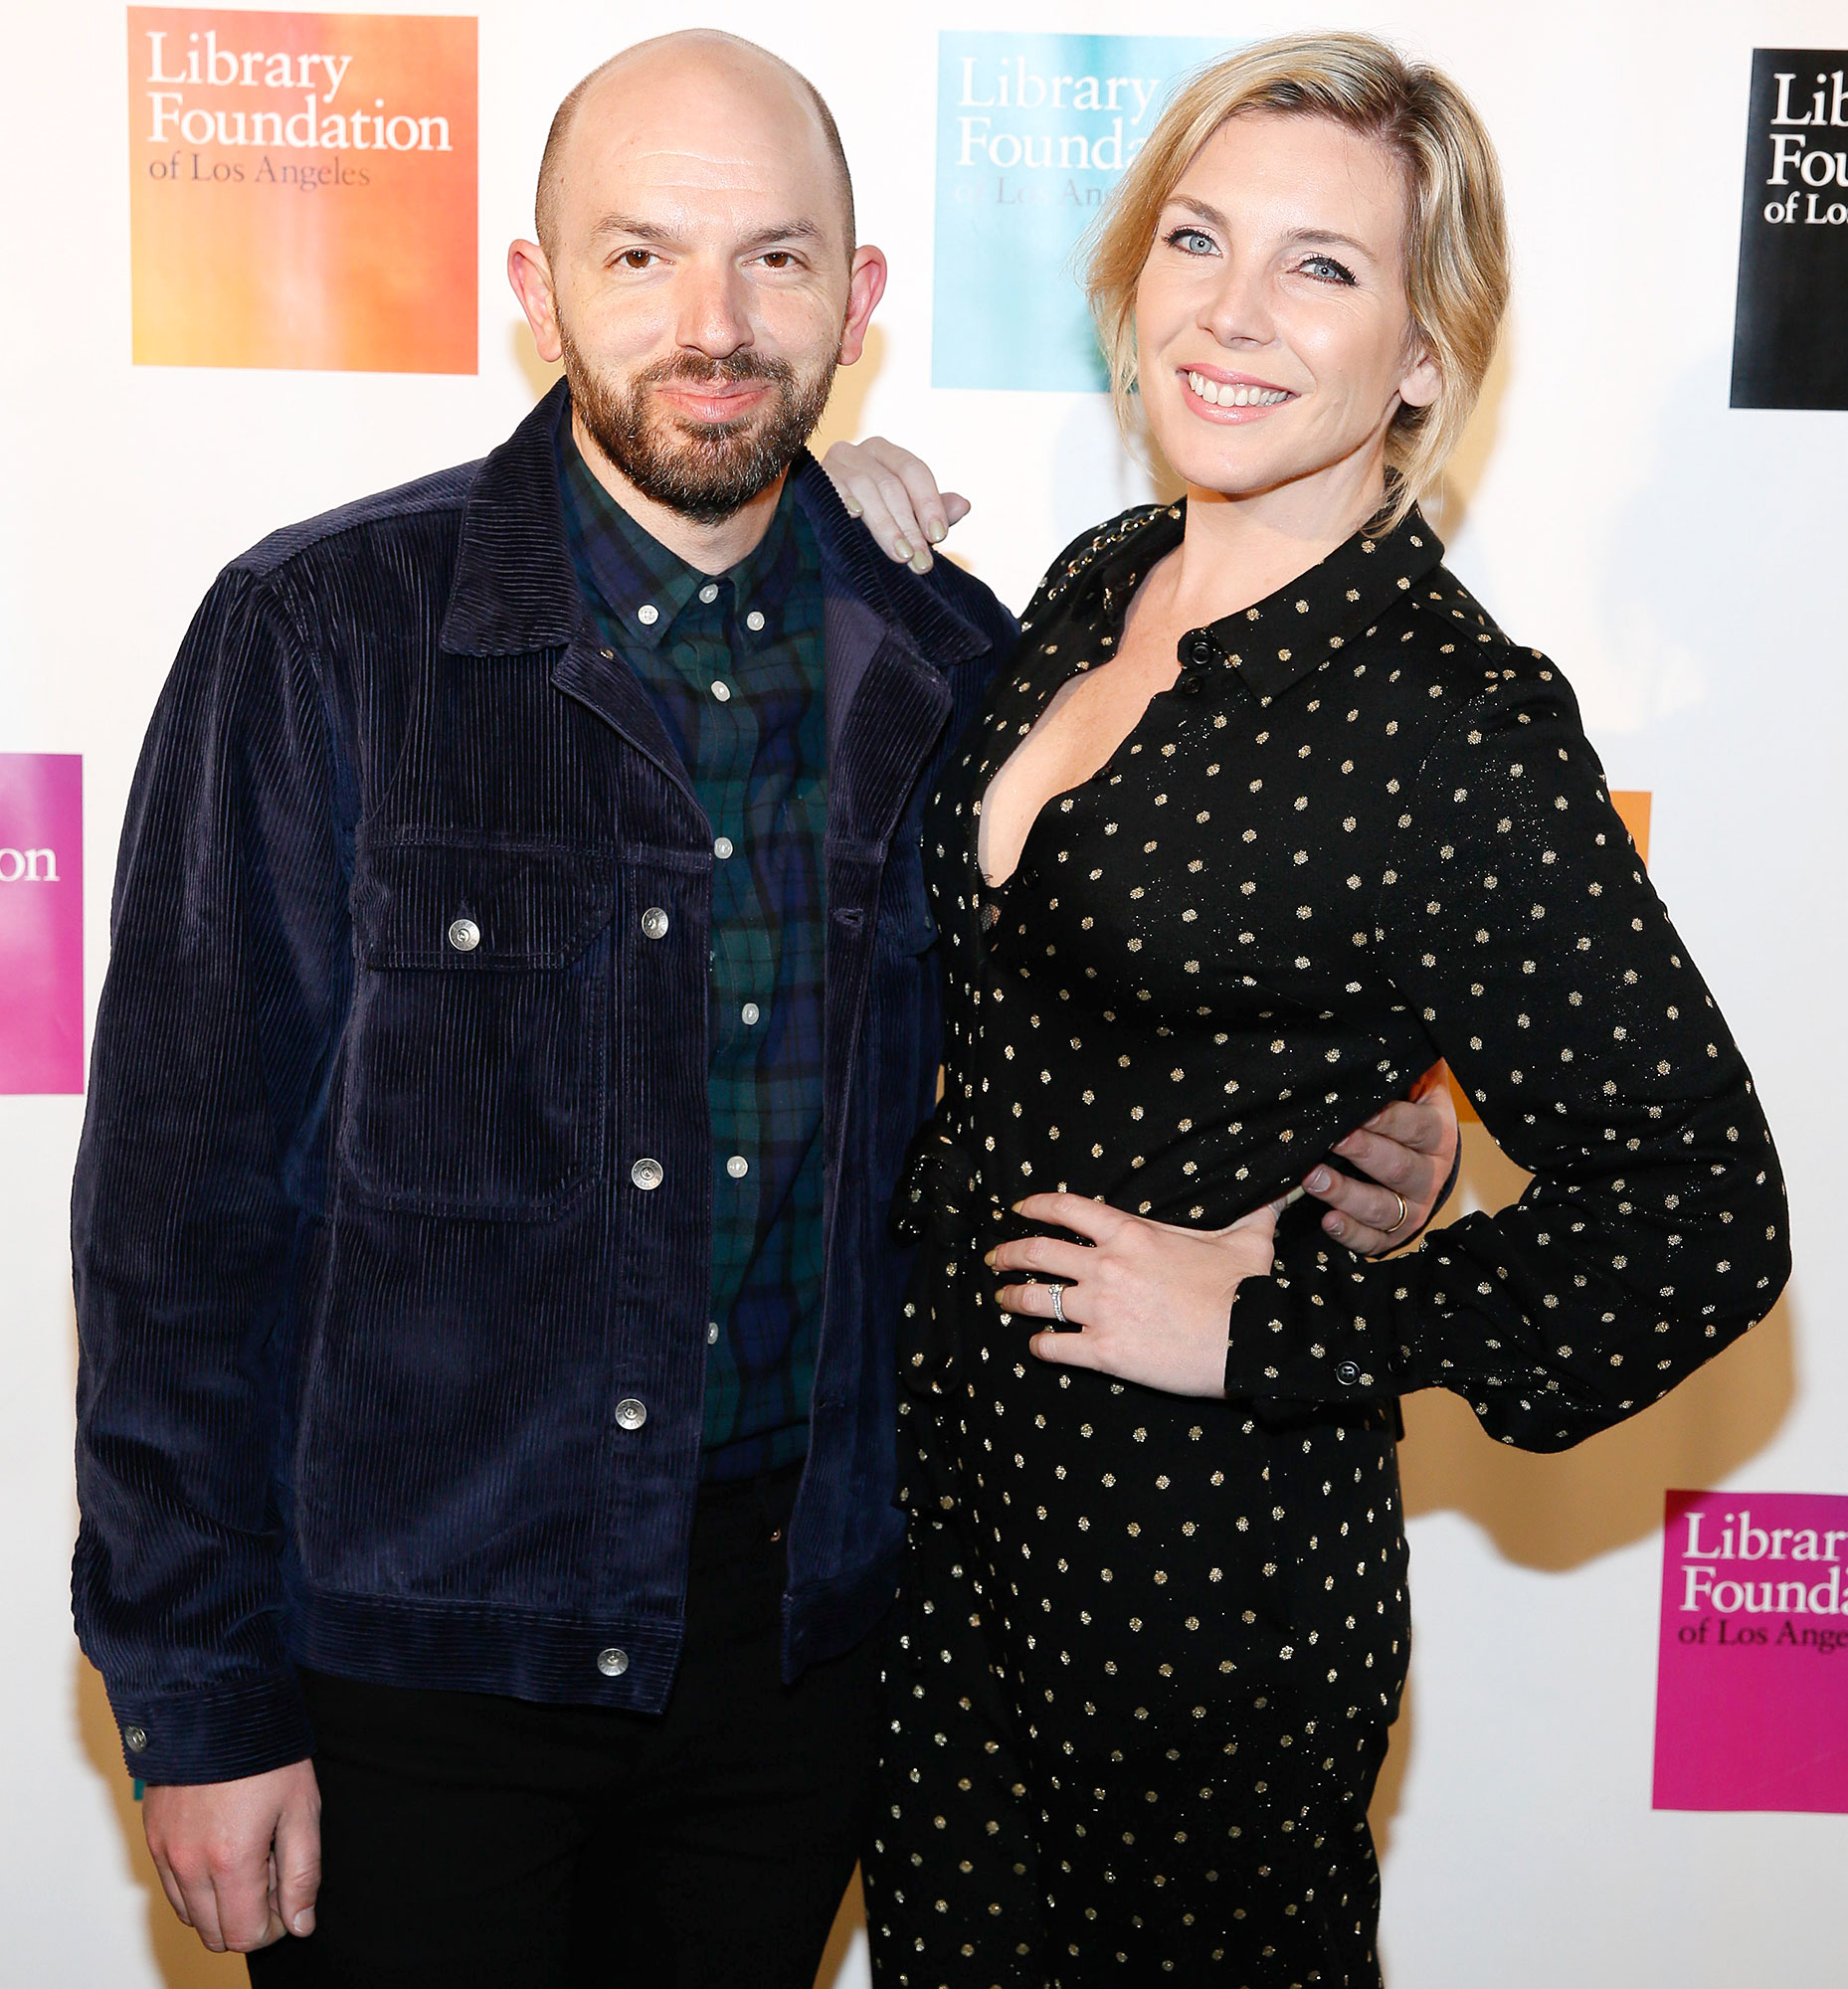 Paul Scheer and June Diane Raphael Talks to Sons About Gender Fluidity